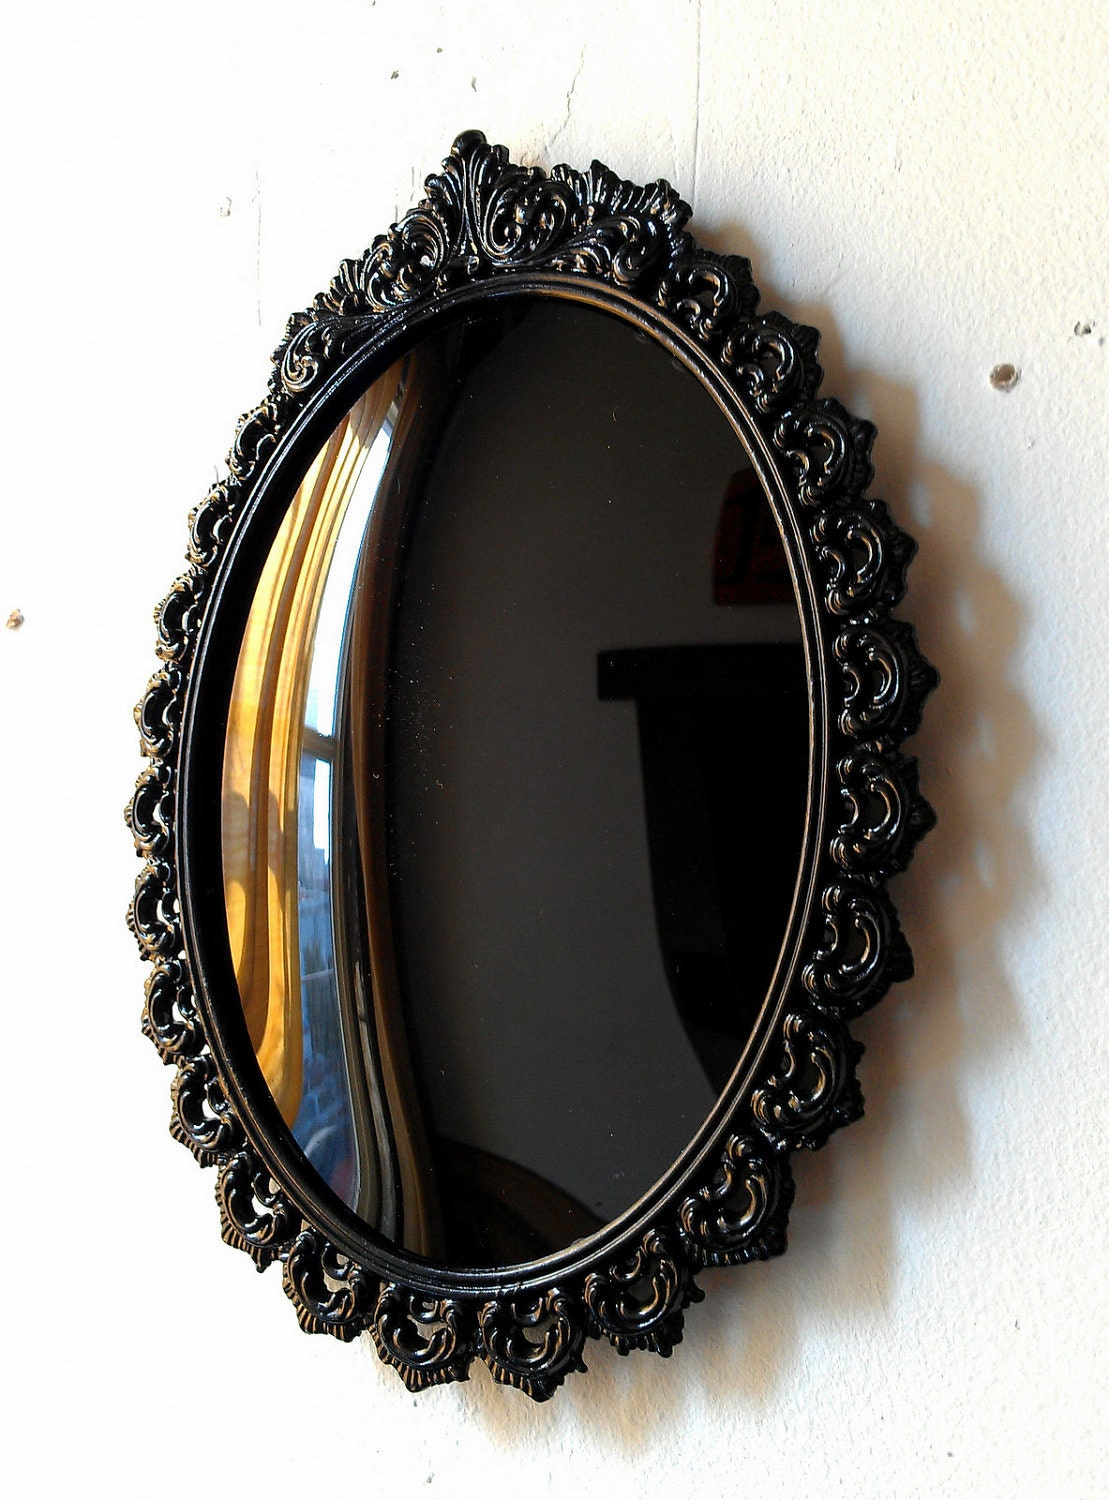 black convex scrying mirror in vintage oval frame 9 by 6